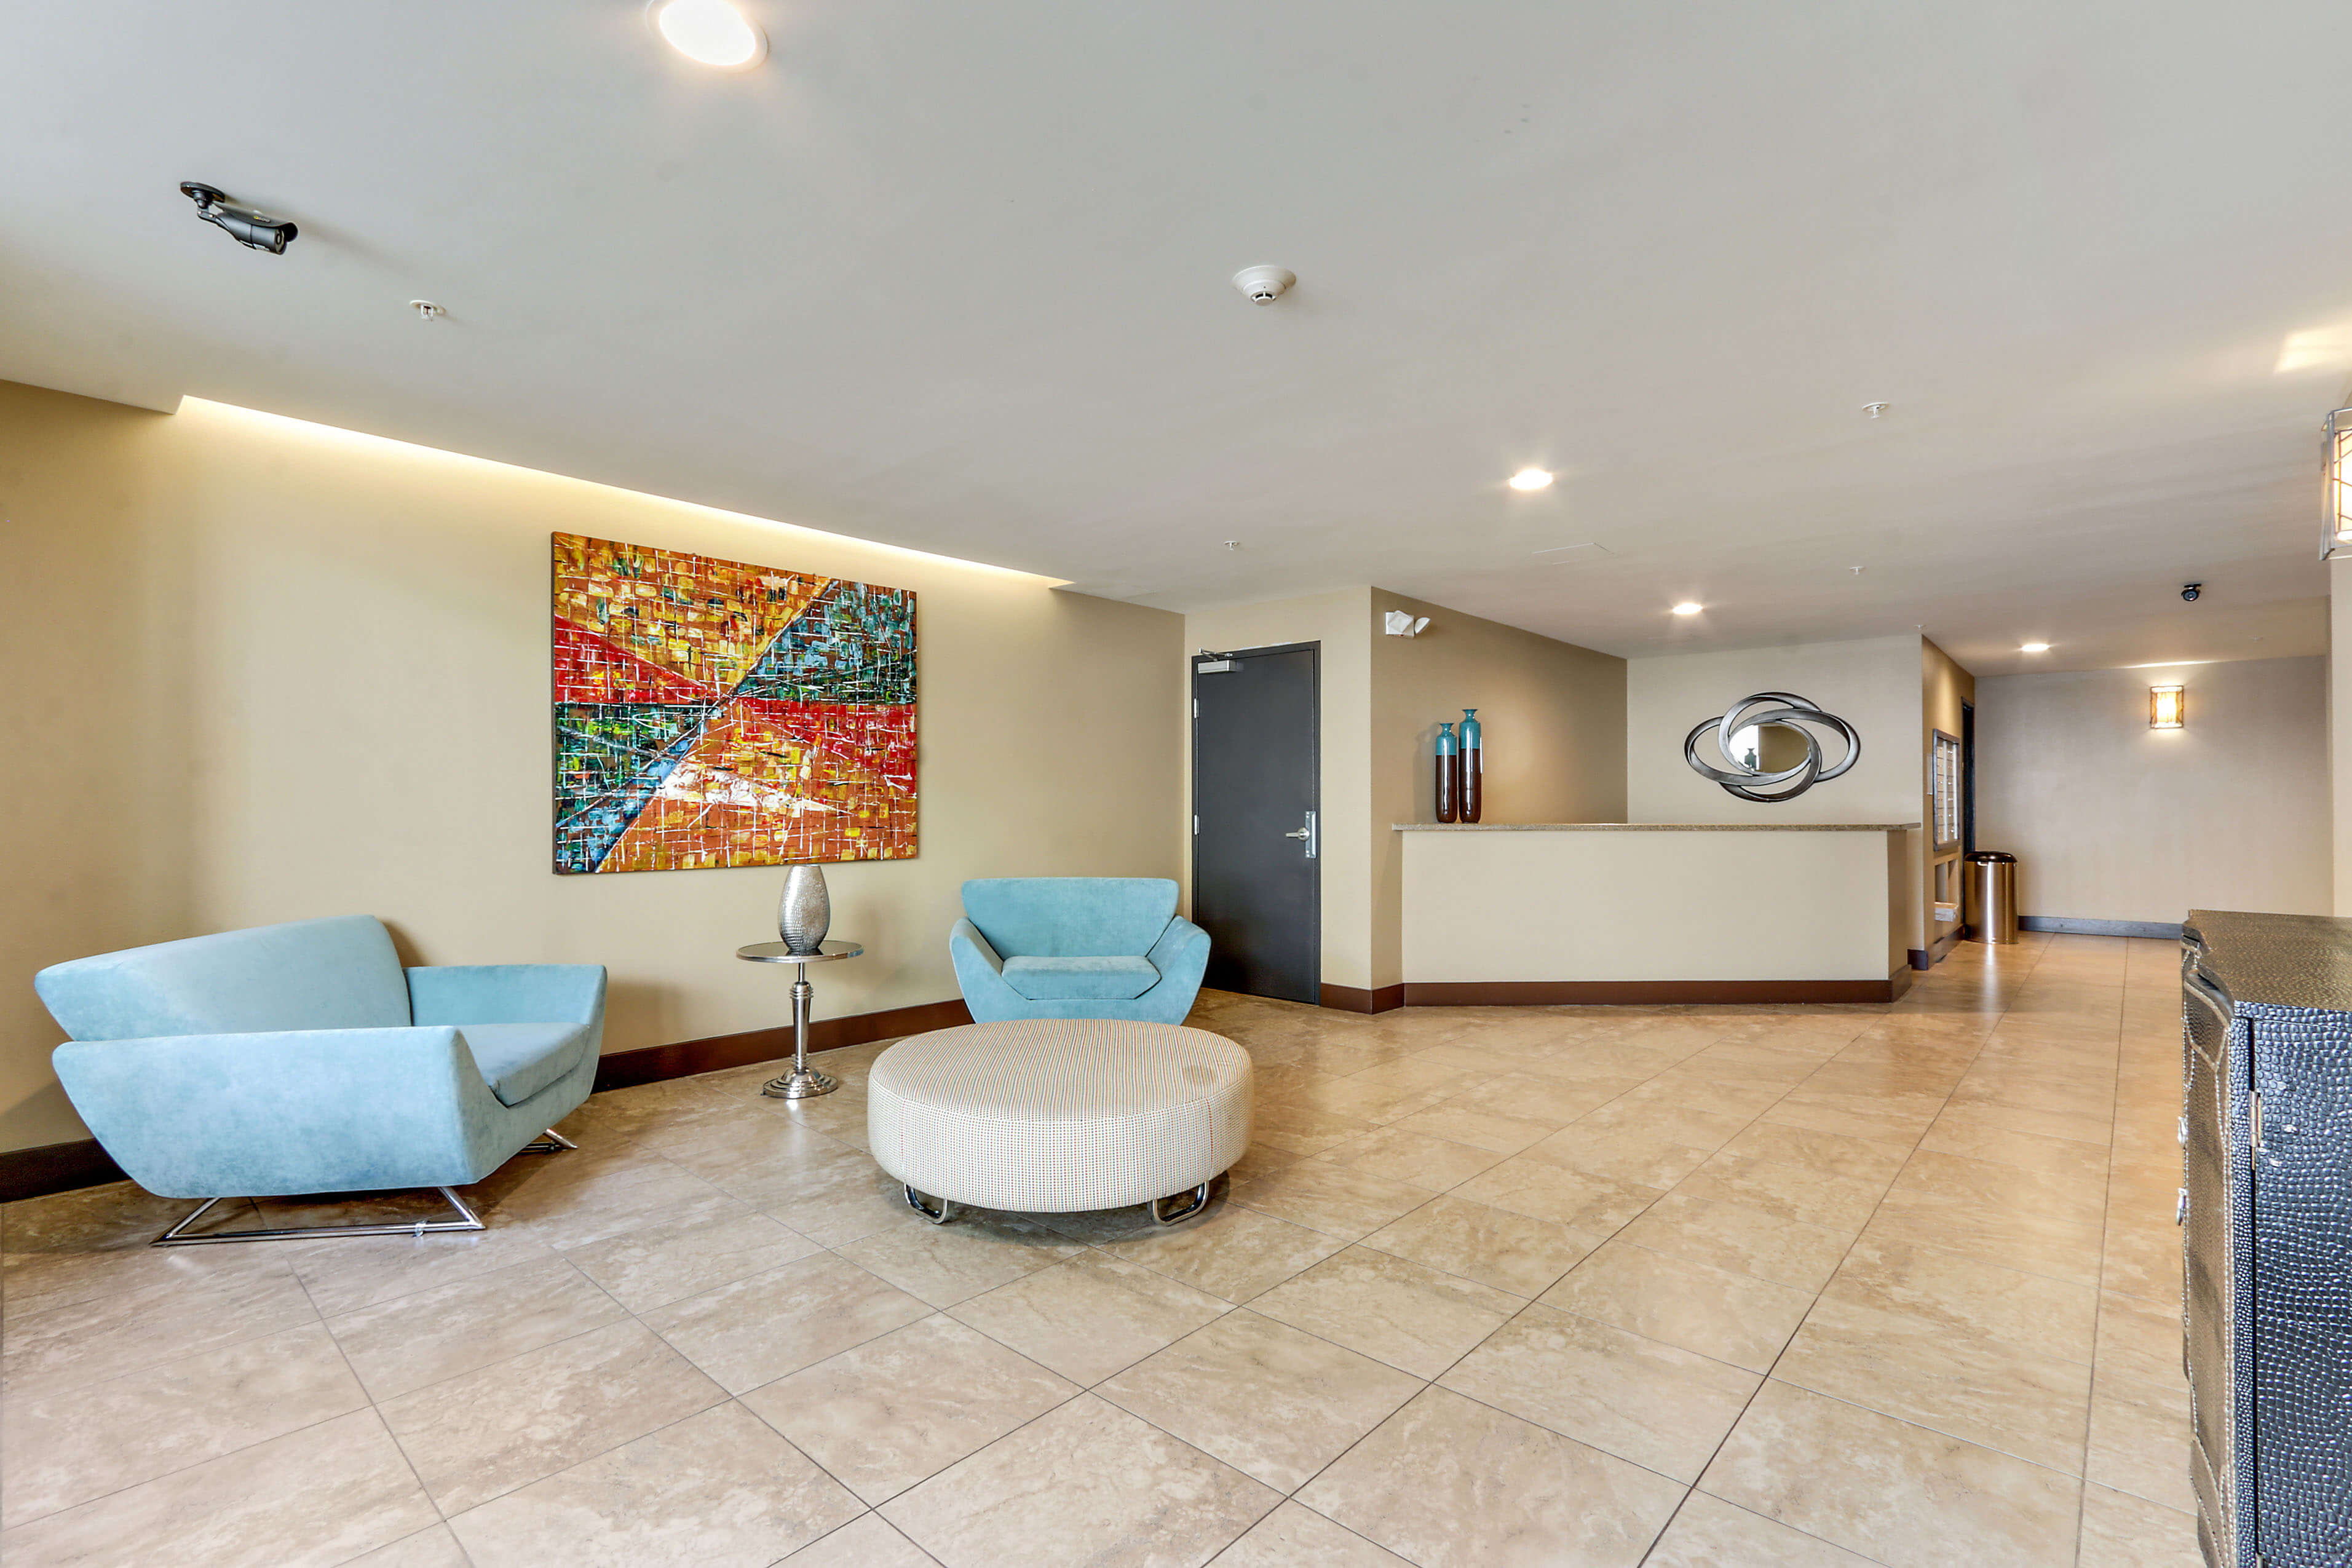 Santa Monica furnished 2 bedroom Apartment for rent 8280 per month Rental ID